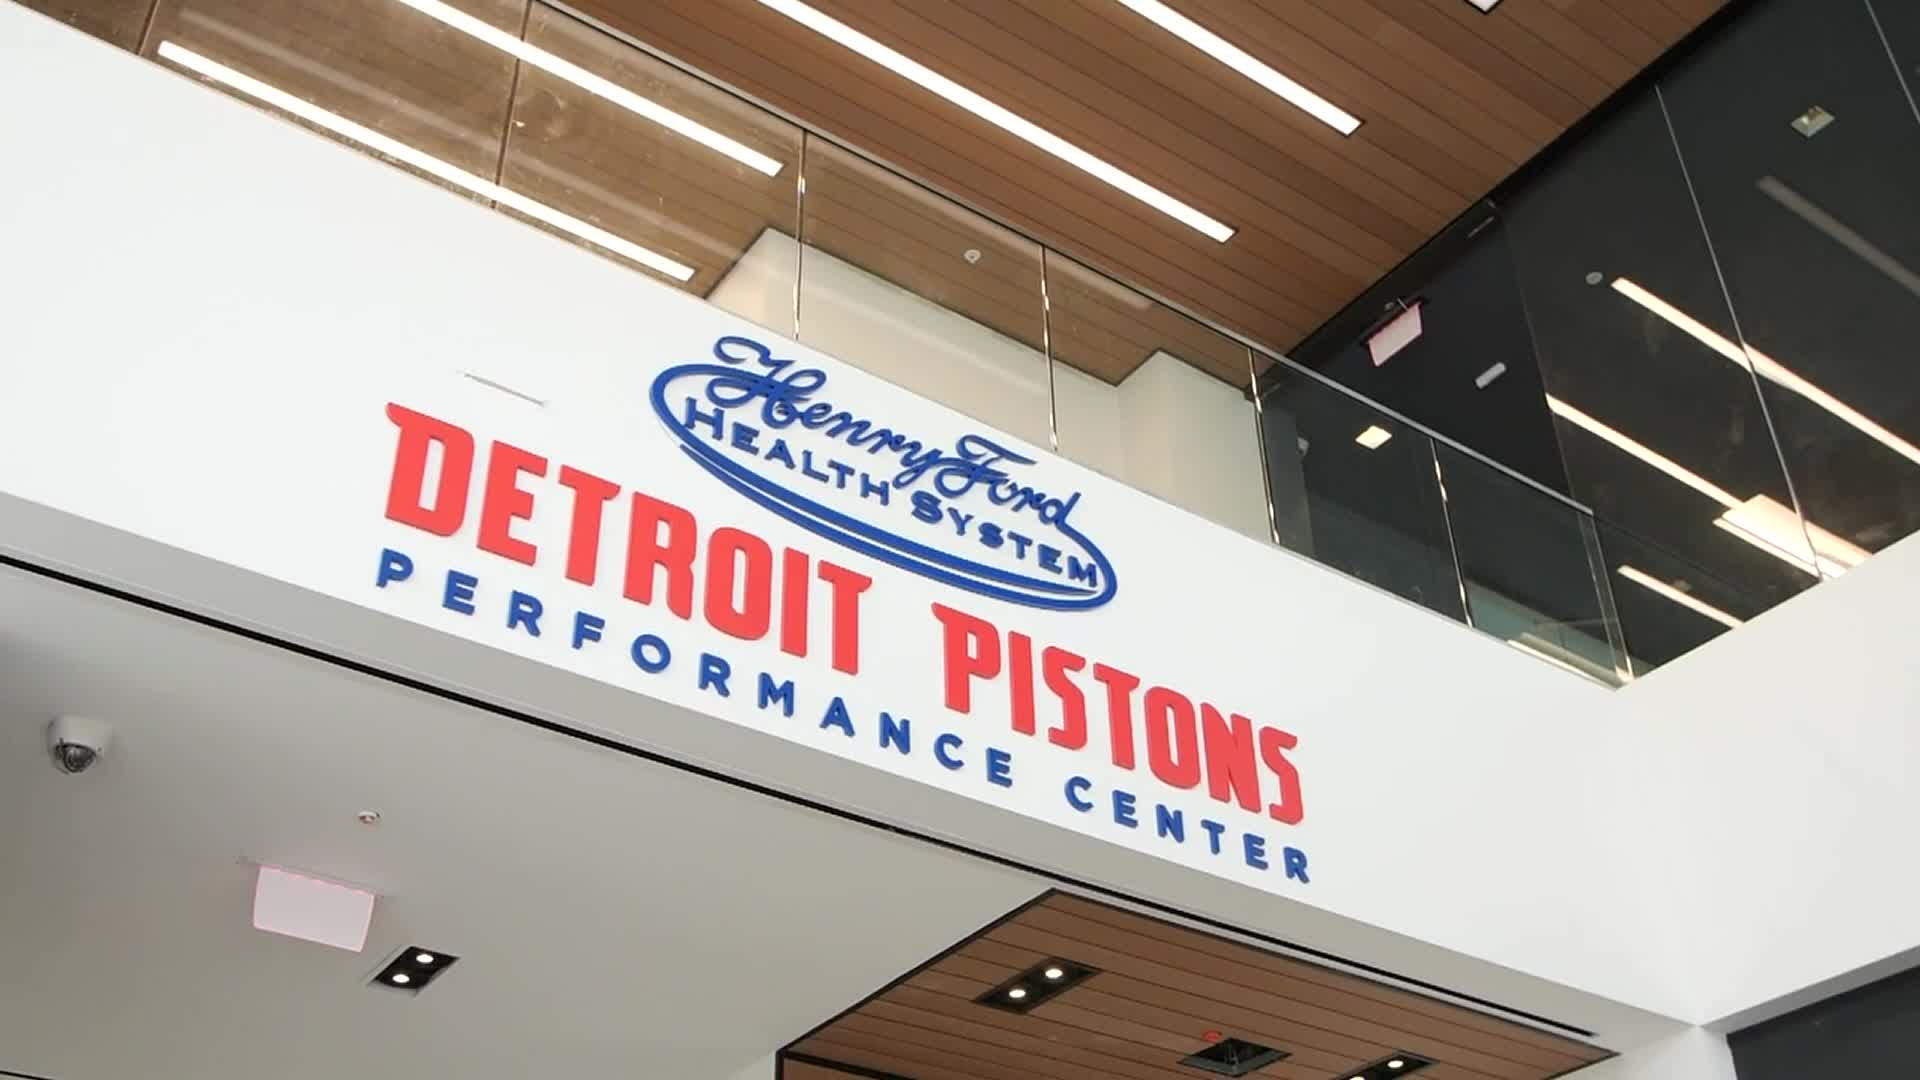 Pistons Fit: Behind the Scenes at the Henry Ford Detroit Pistons Performance Center